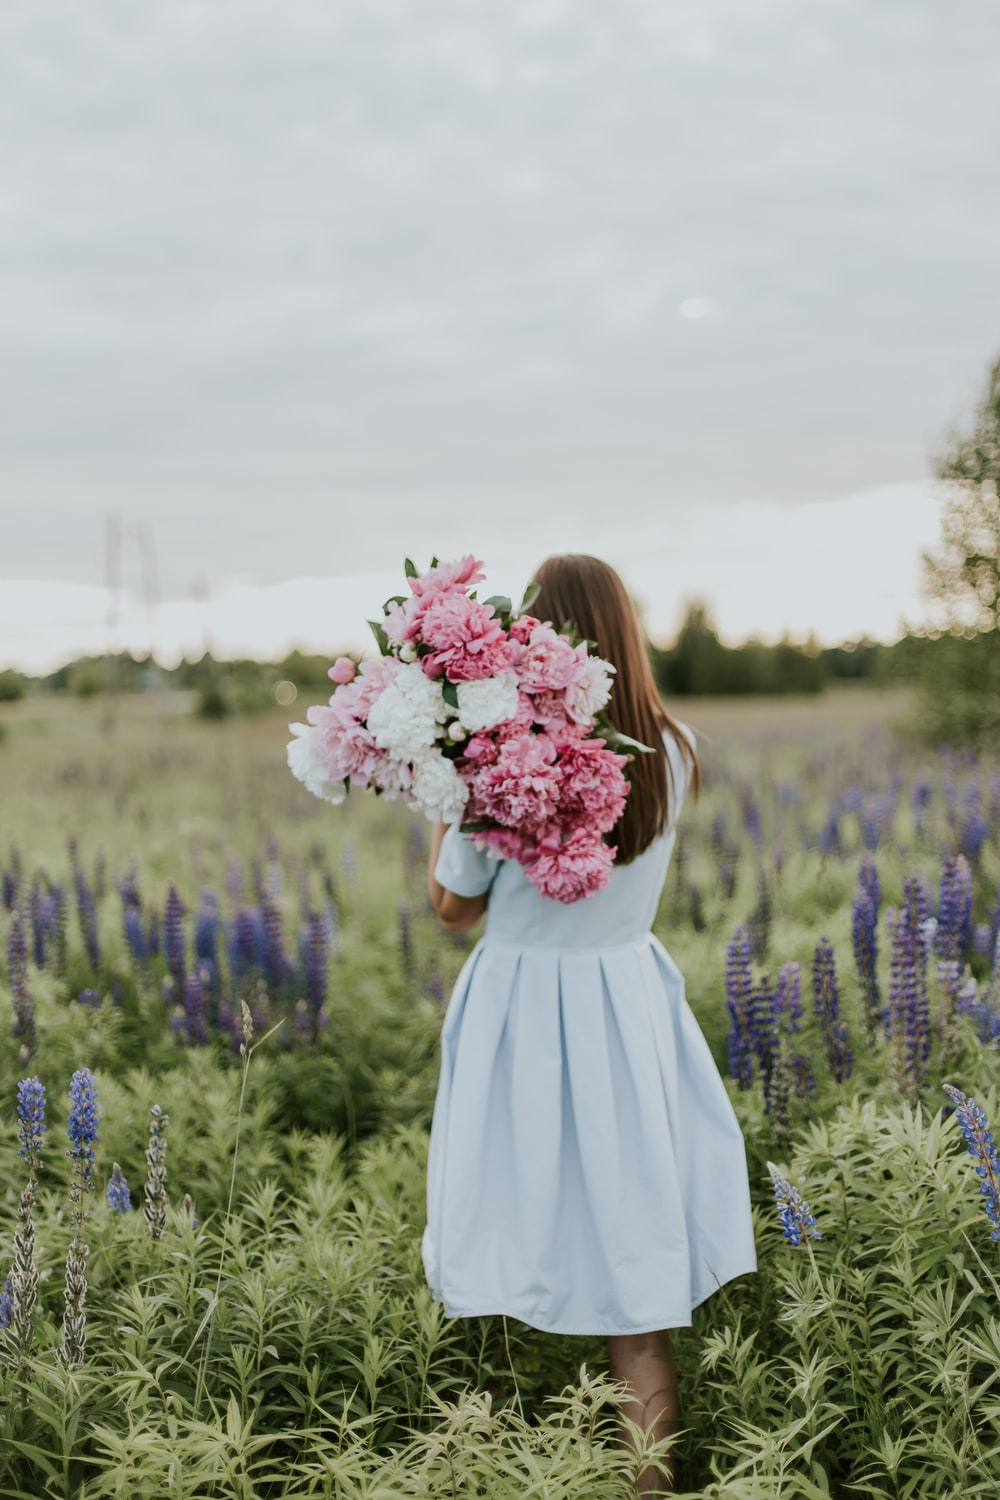 woman carrying pink and white flowers